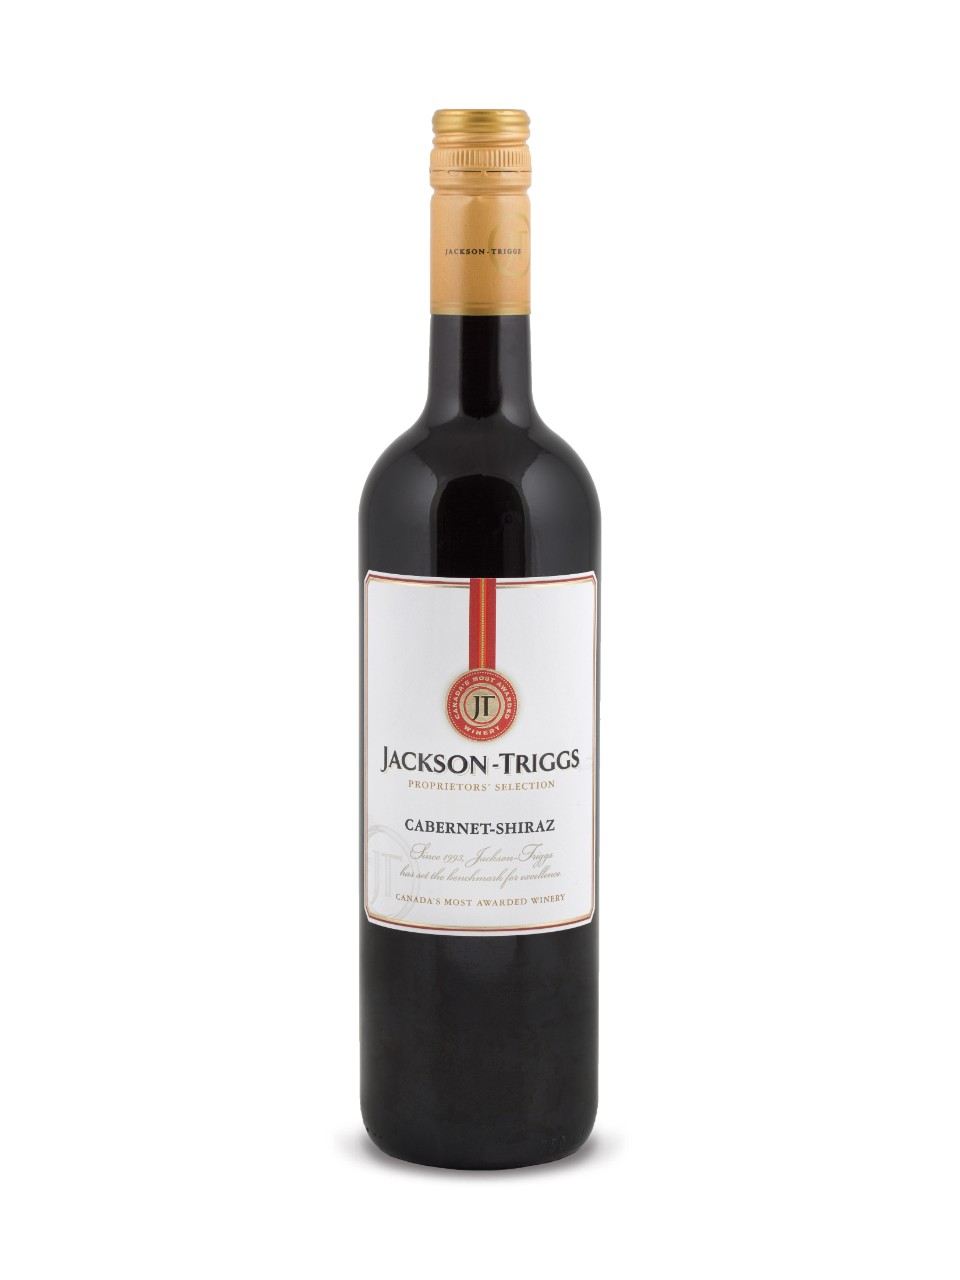 Cabernet/Shiraz Proprietor's Selection Jackson-Triggs